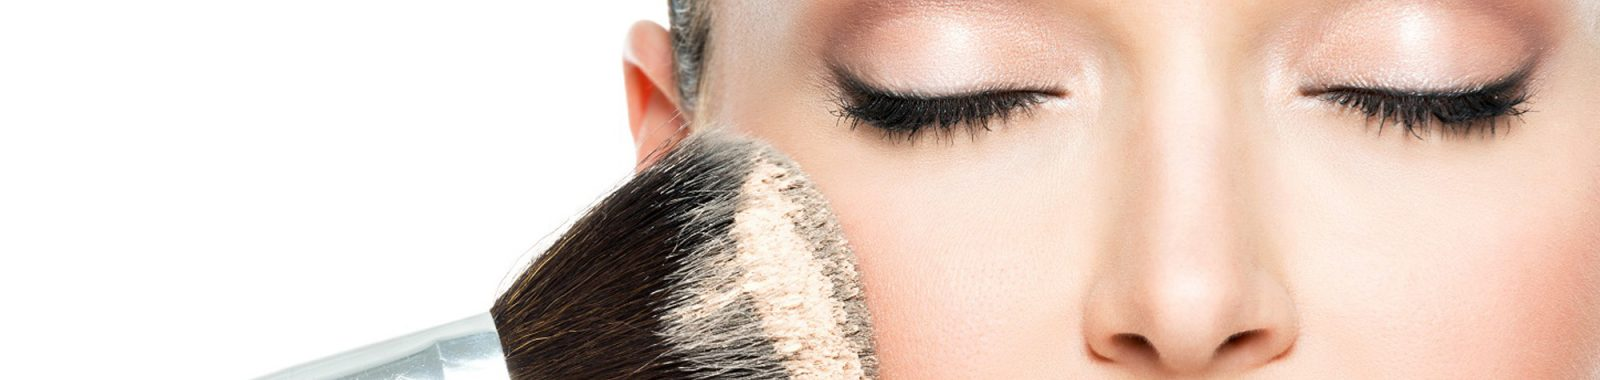 Come sistemare i trucchi: I 5 segreti per un make up impeccabile